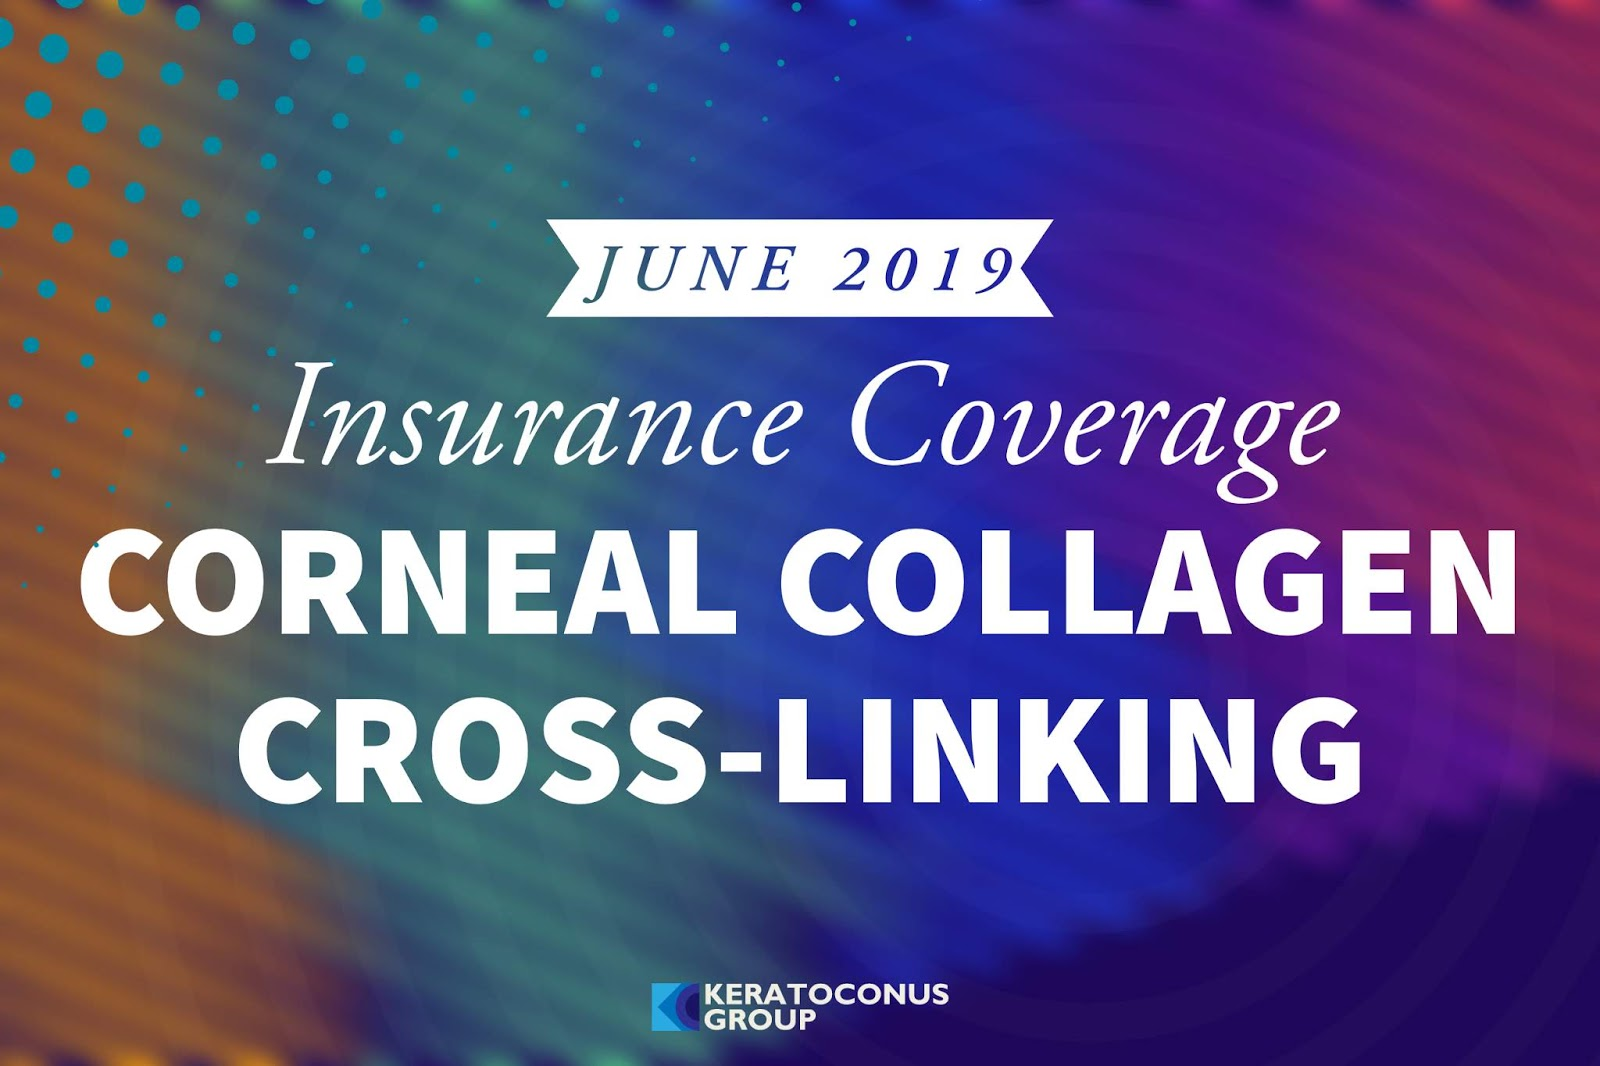 Insurance Coverage for Corneal Cross-Linking (2019) | Keratoconus Group